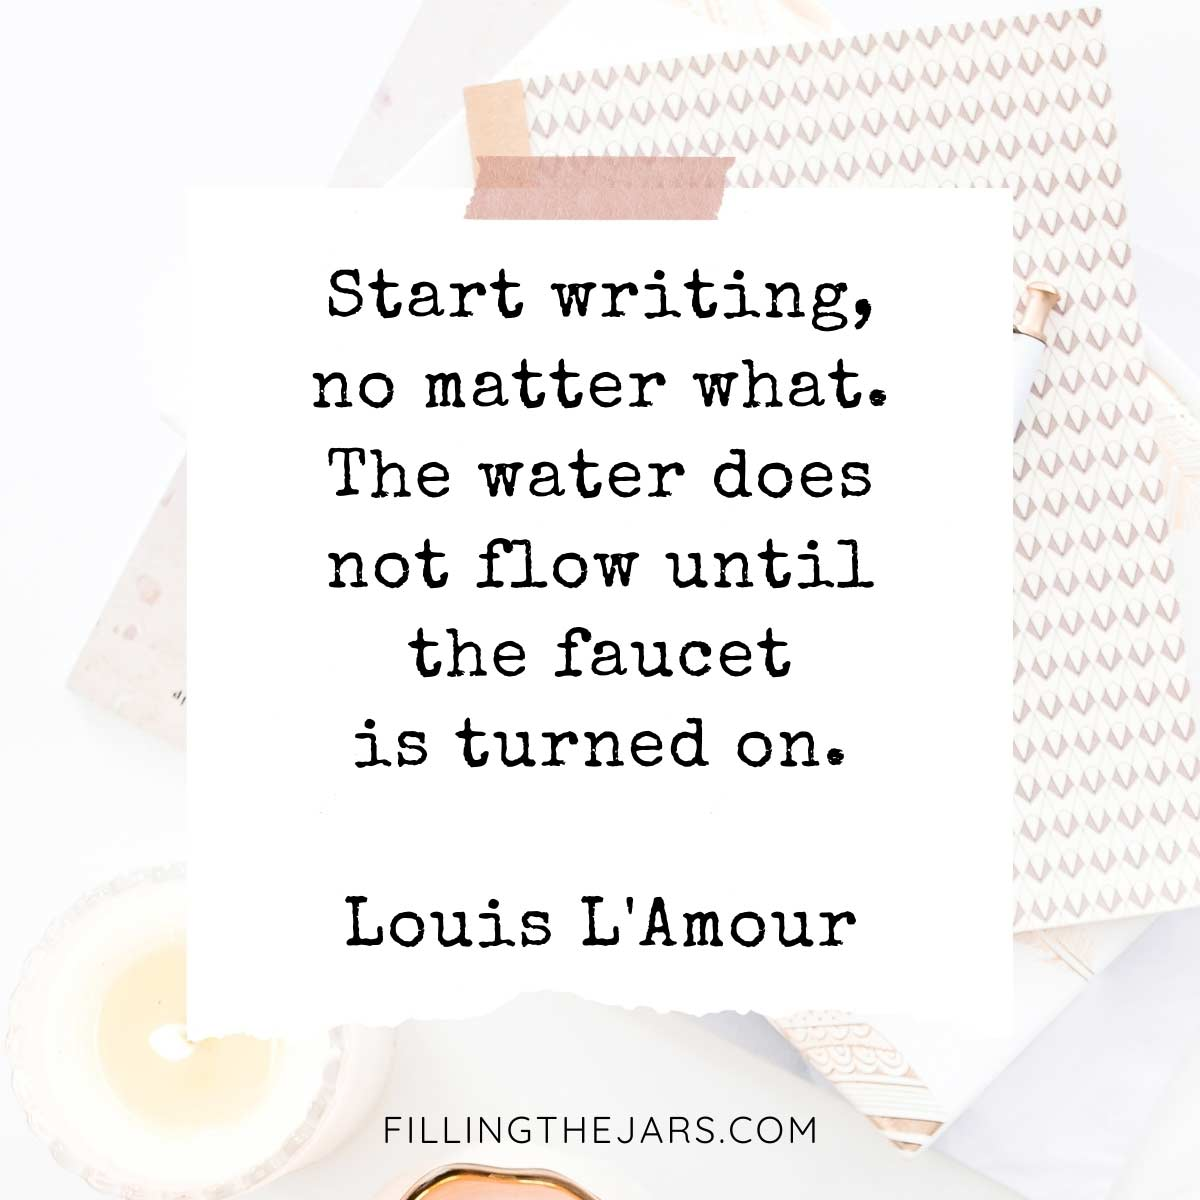 Louis L'Amour 'start writing' quote on torn-paper background over image of journals and candle on white desk.